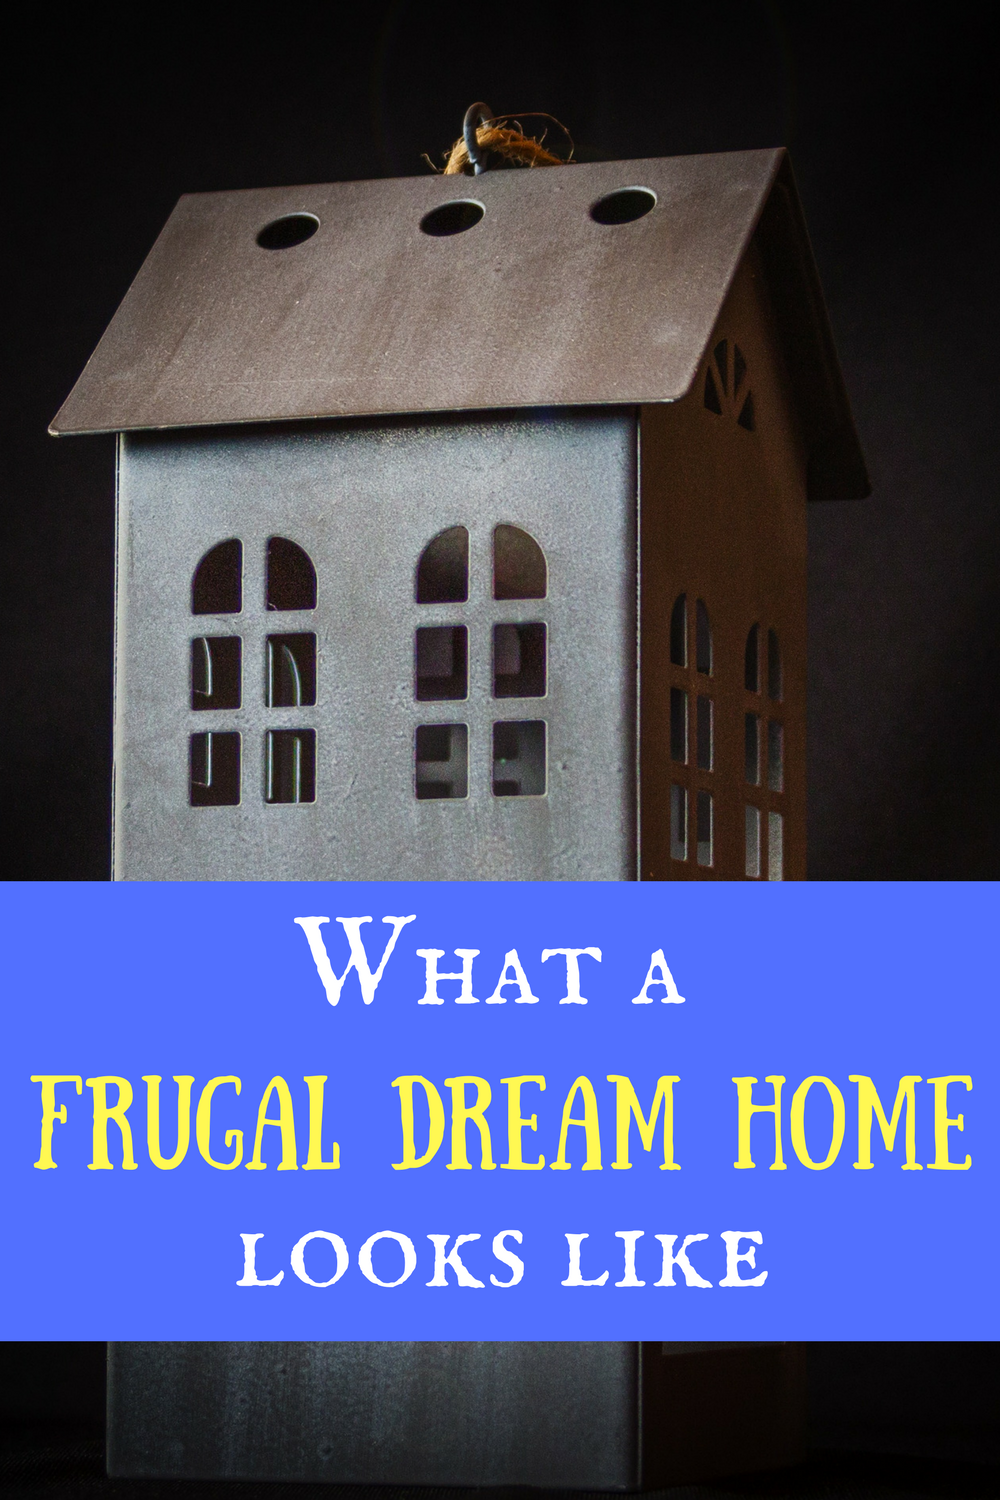 A frugal home IS the dream!